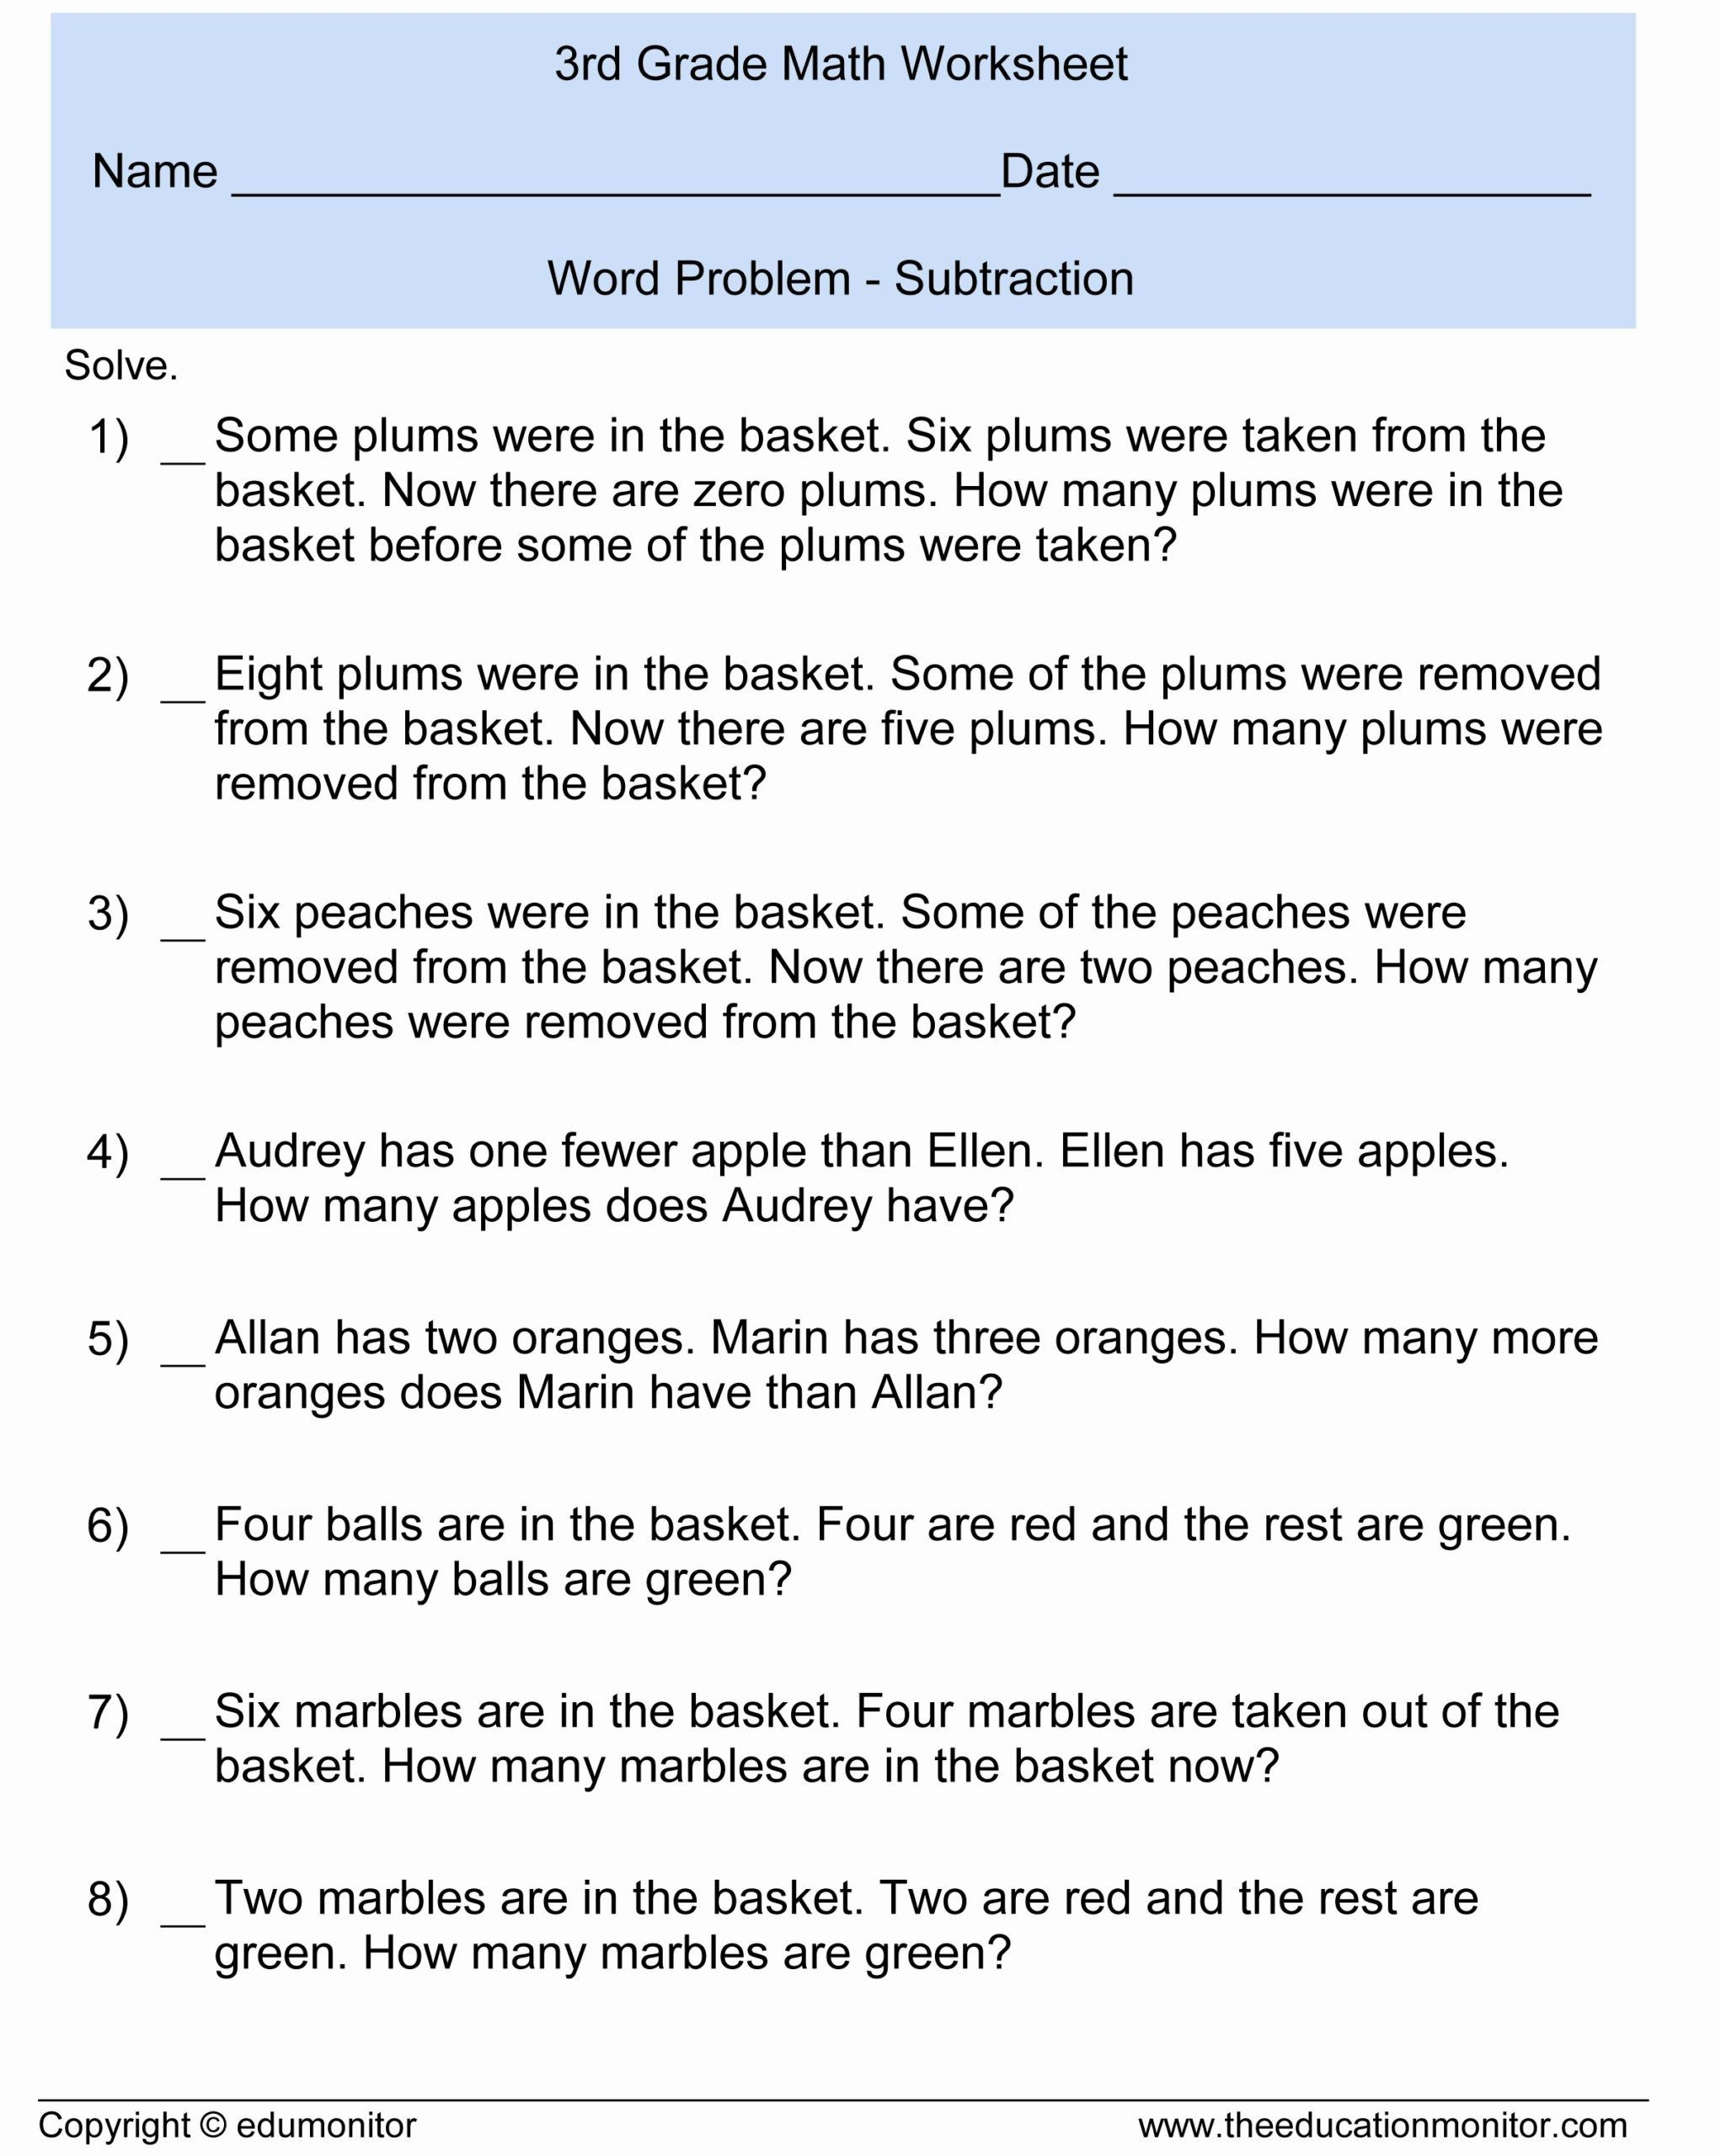 6 5th Grade Math Word Problems Worksheets With Answers In